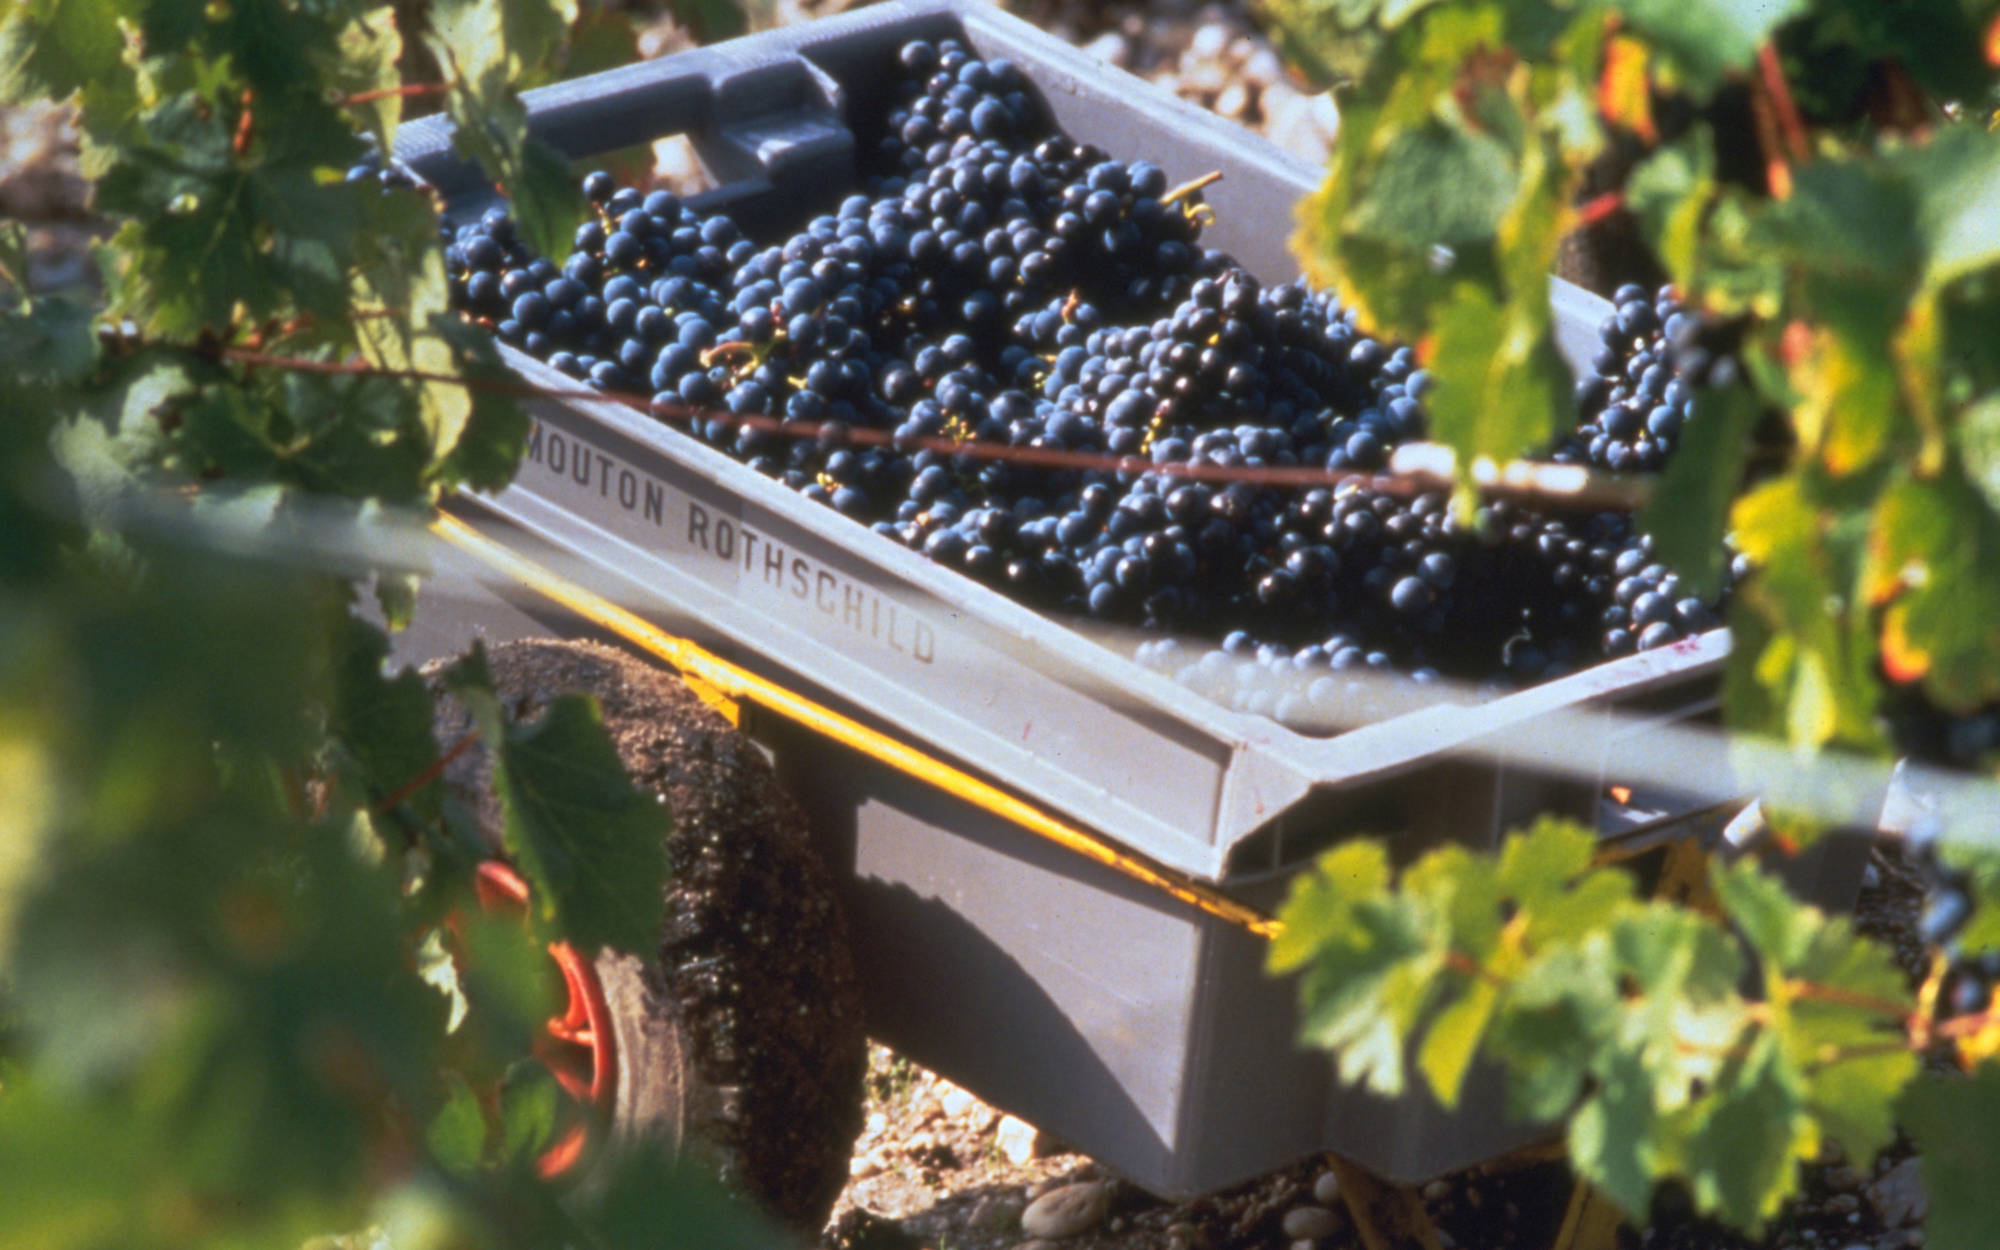 Grape harvest at Mouthon Rothschild